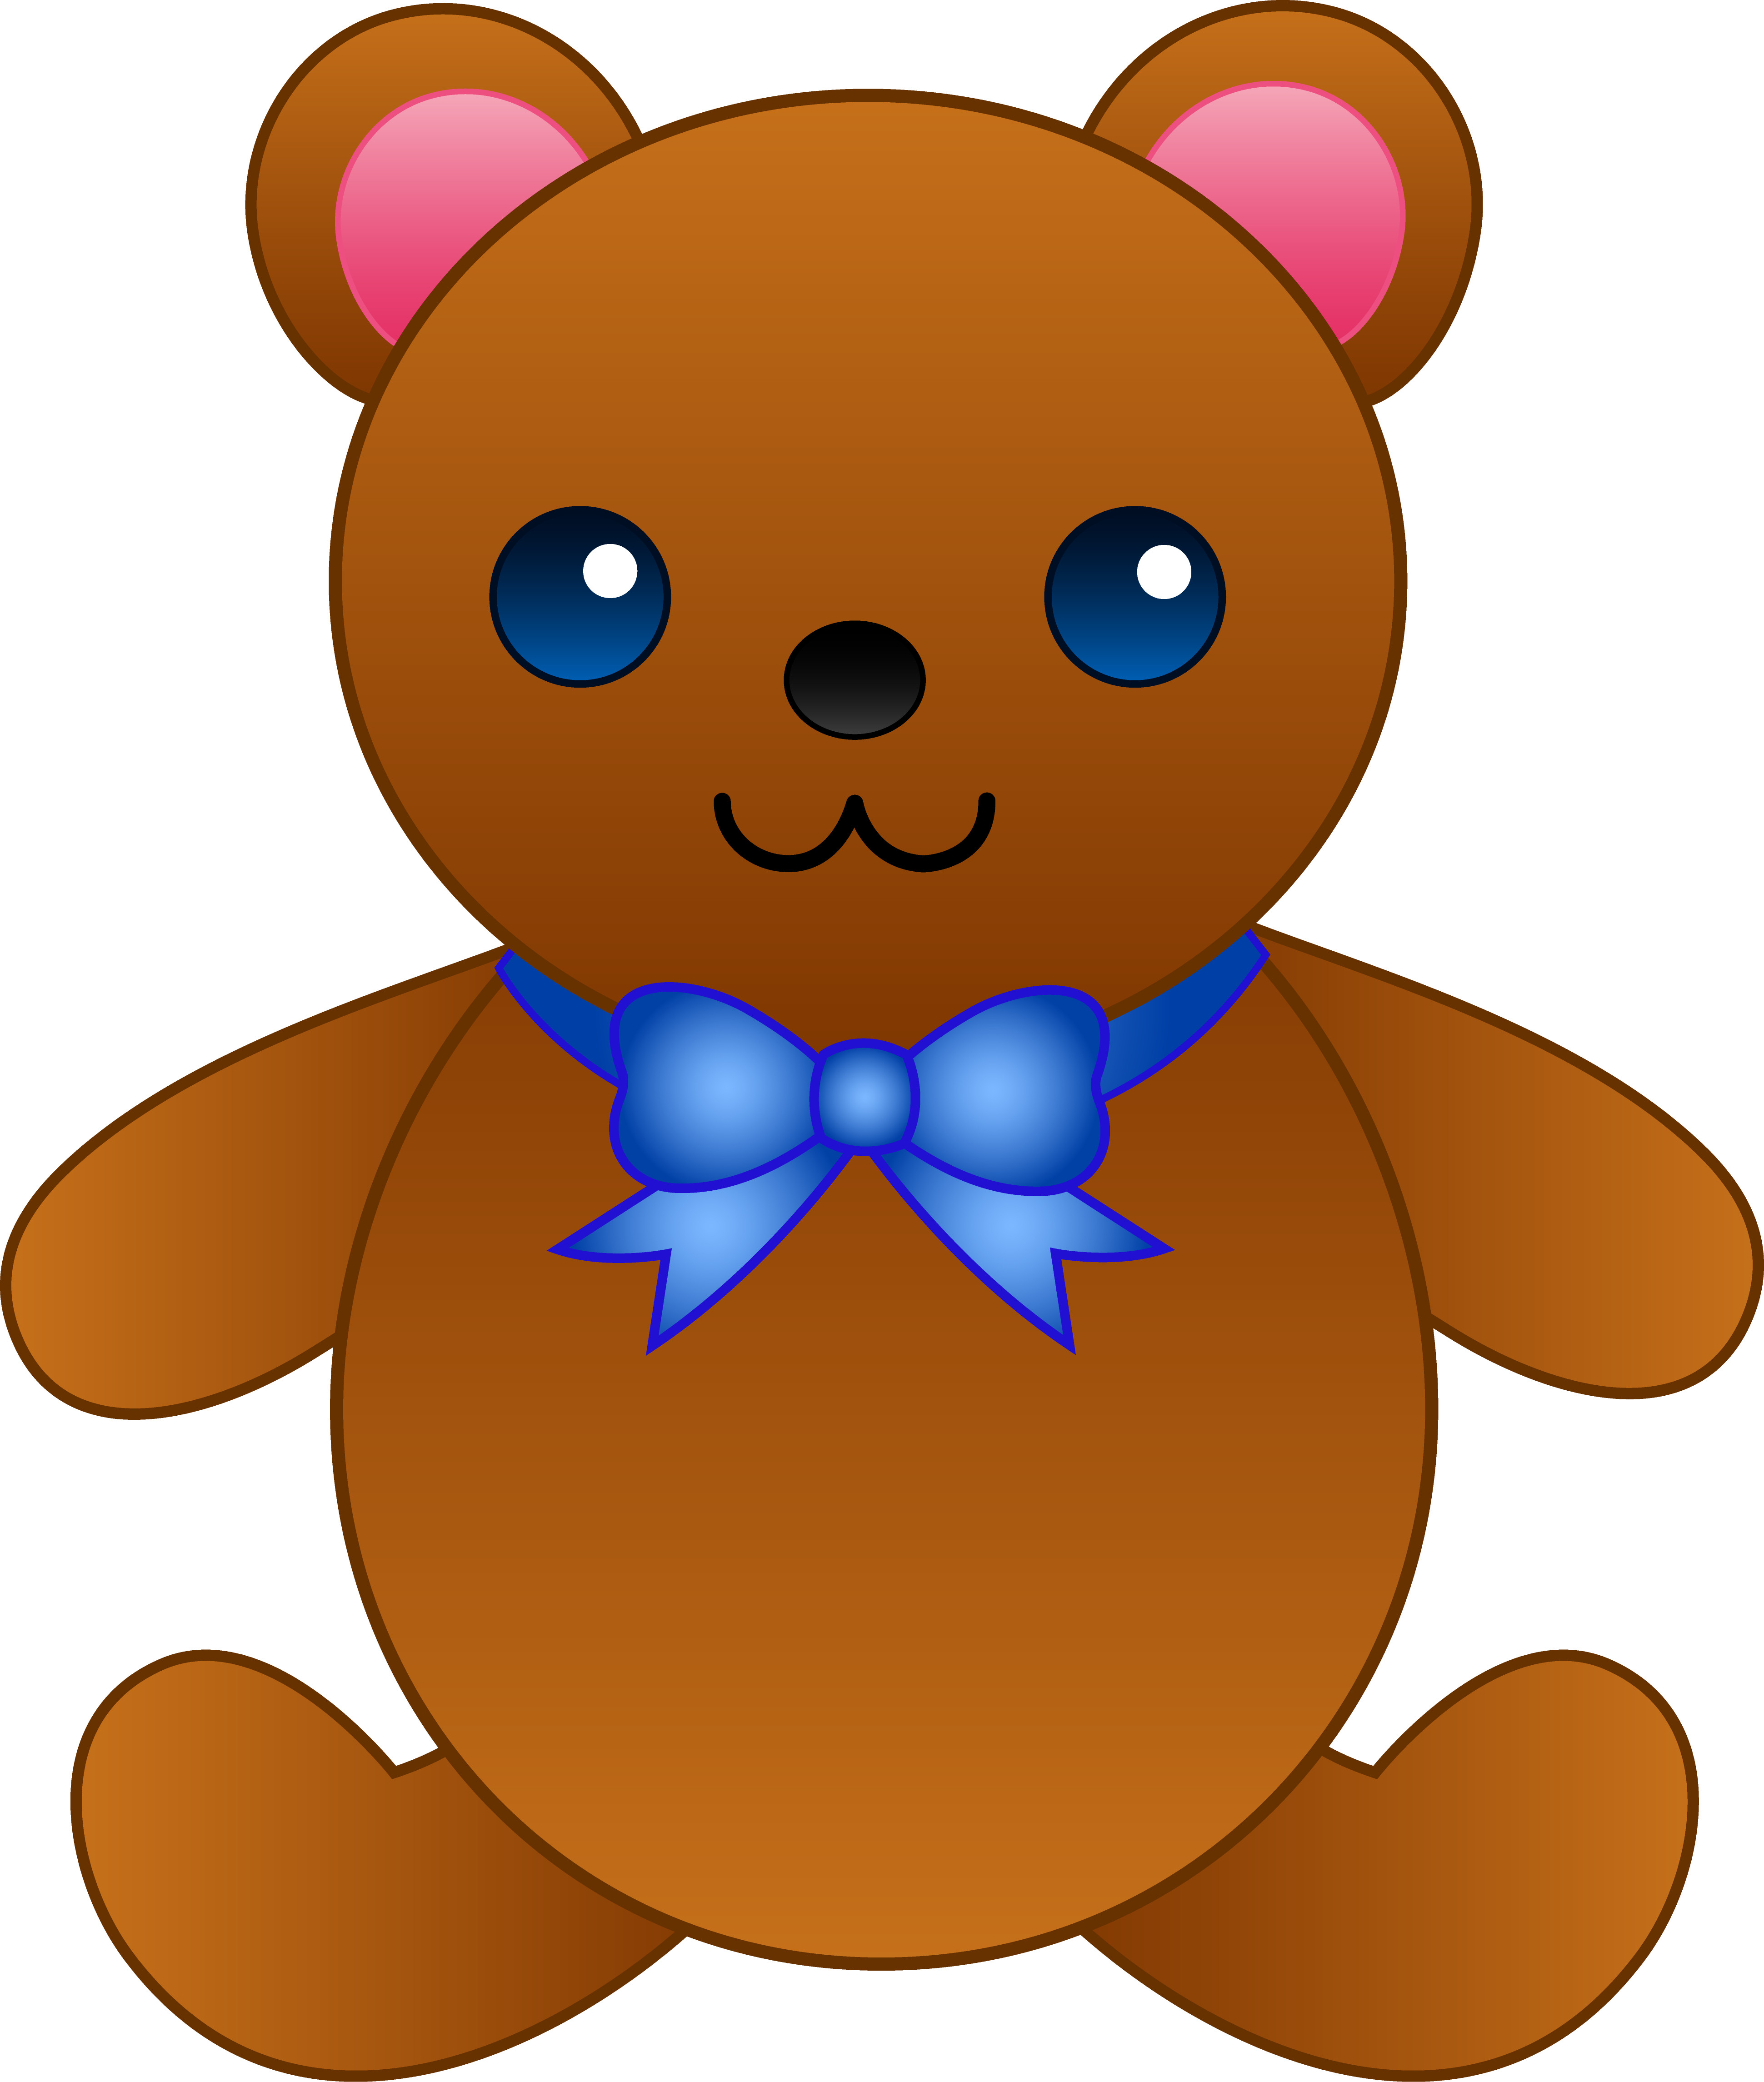 Blue Teddy Bear Clipart | Clipart Panda - Free Clipart Images